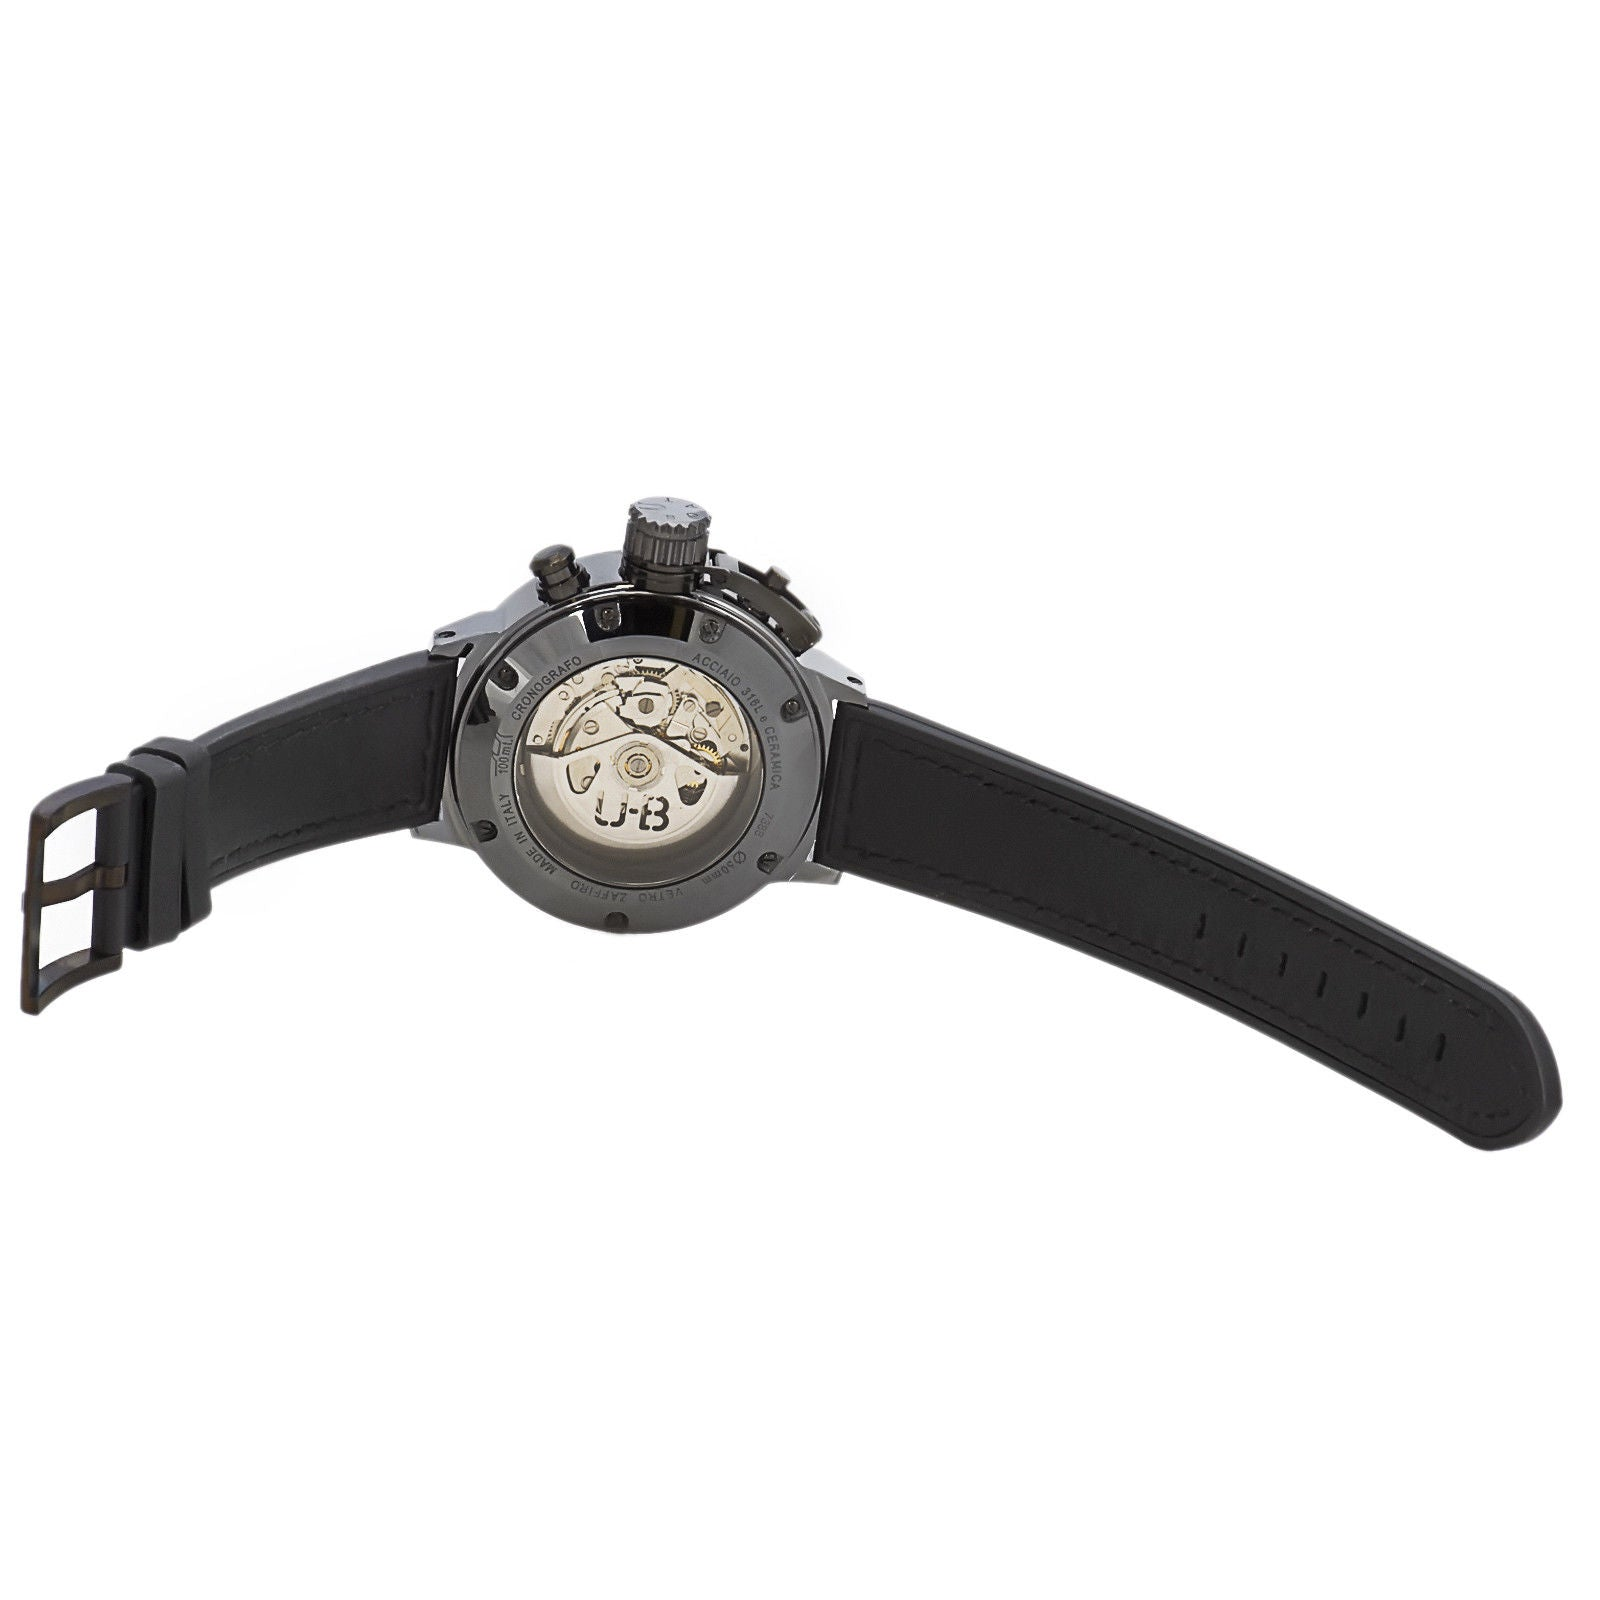 Flightdeck Chronograph Full Ceramic 7388 Automatic Men's Watch-Luxury Watches | Mens And Ladies Luxury Watches | Upscale Time